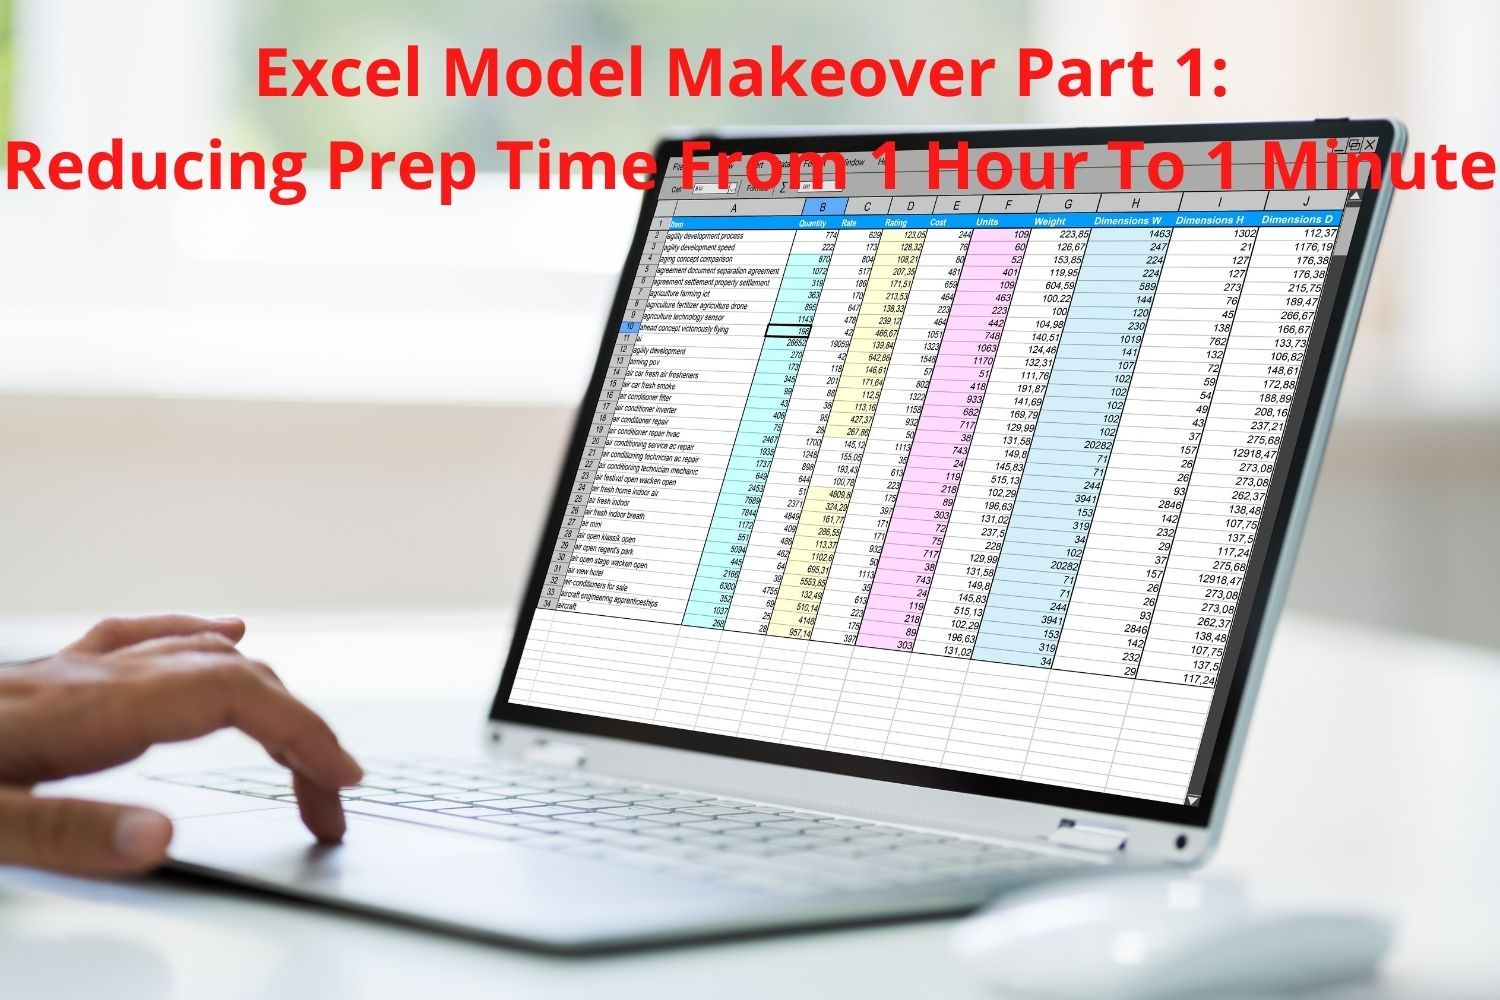 Master the full skills of designing, implementing and evaluating a financial model.